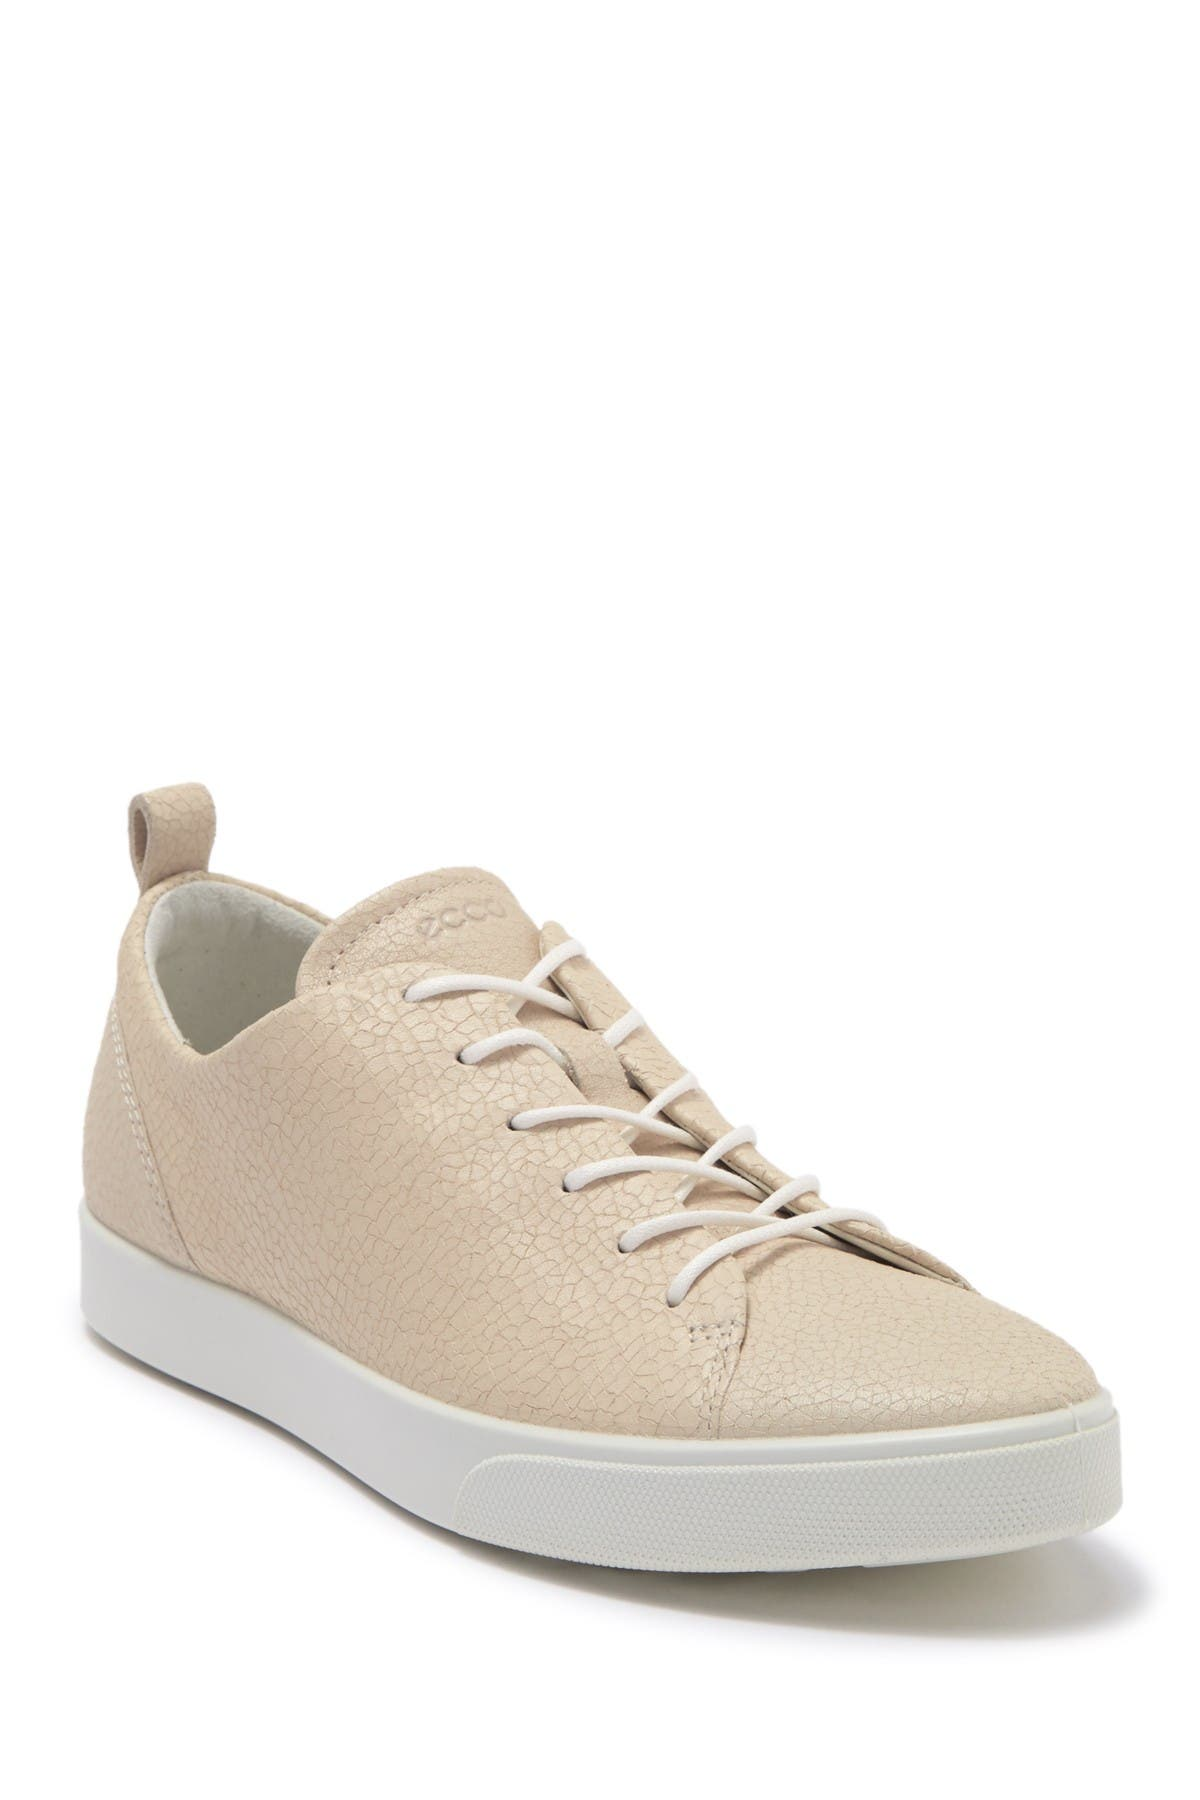 Image of ECCO Gillian Trend Lace-up Sneaker